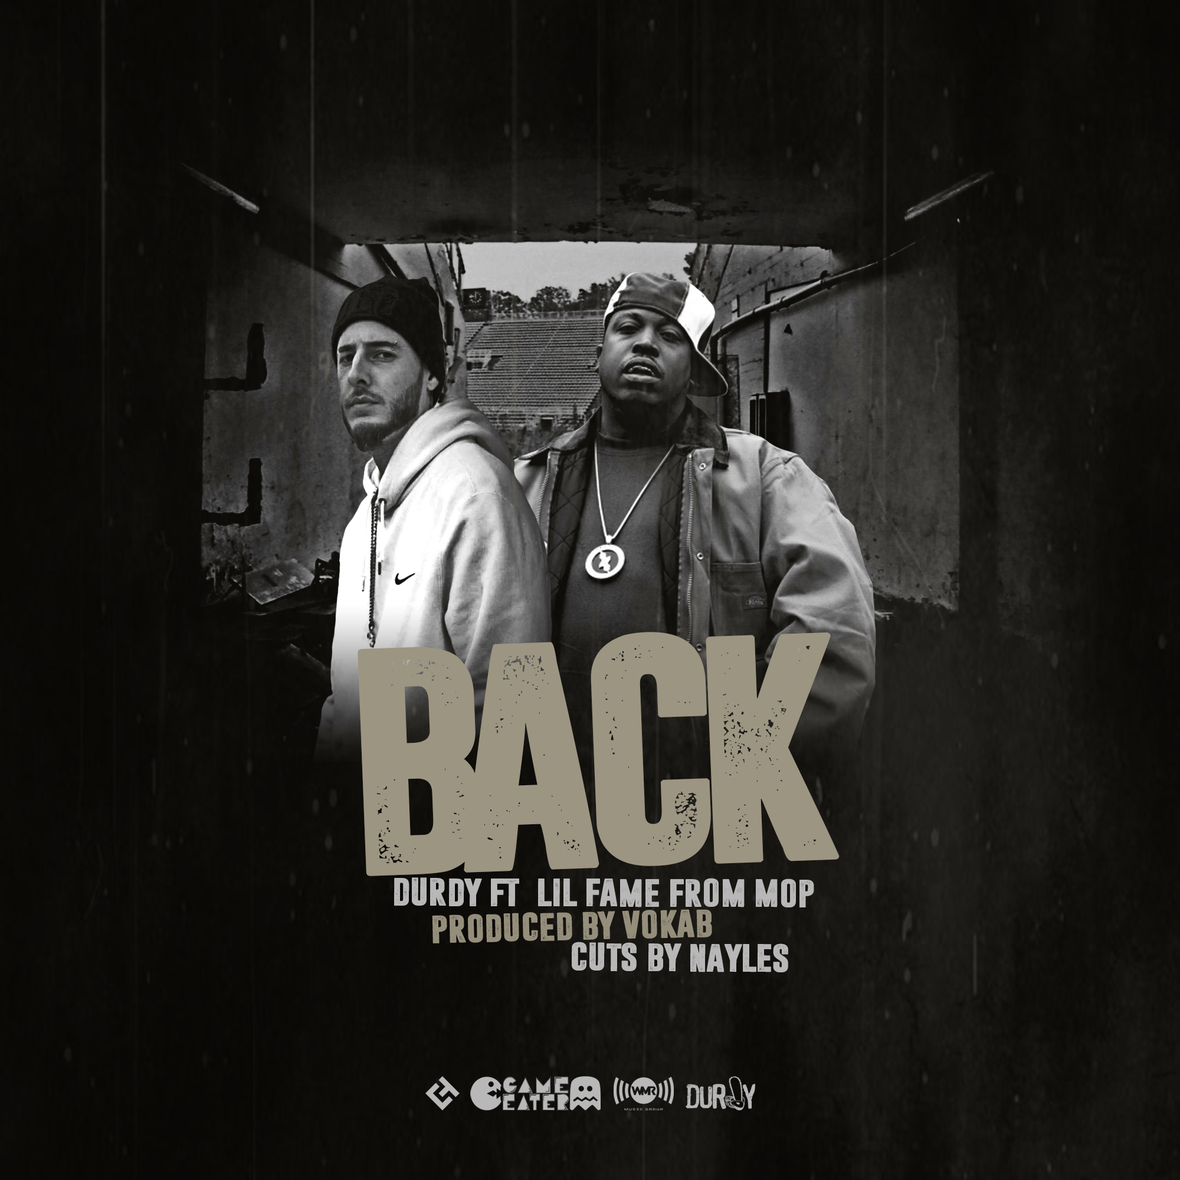 Durdy - BACK Feat. Lil Fame of M.O.P. (Produced by Vokab) [audio]